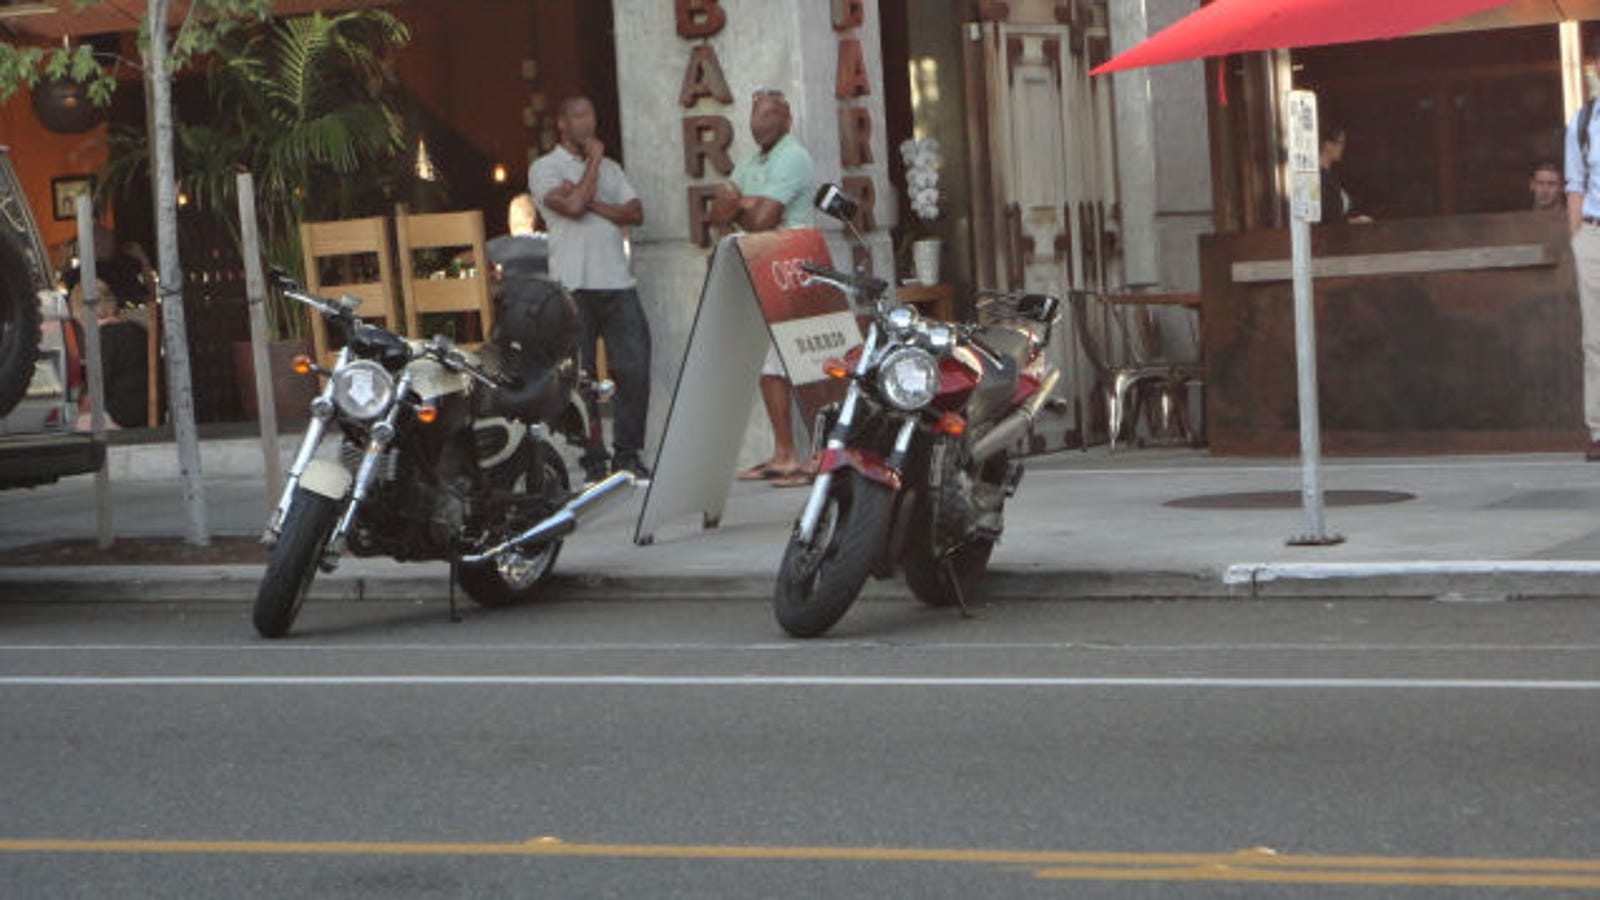 The Honda 919 Or How Learned To Live With A Simple Bike For 2 Years